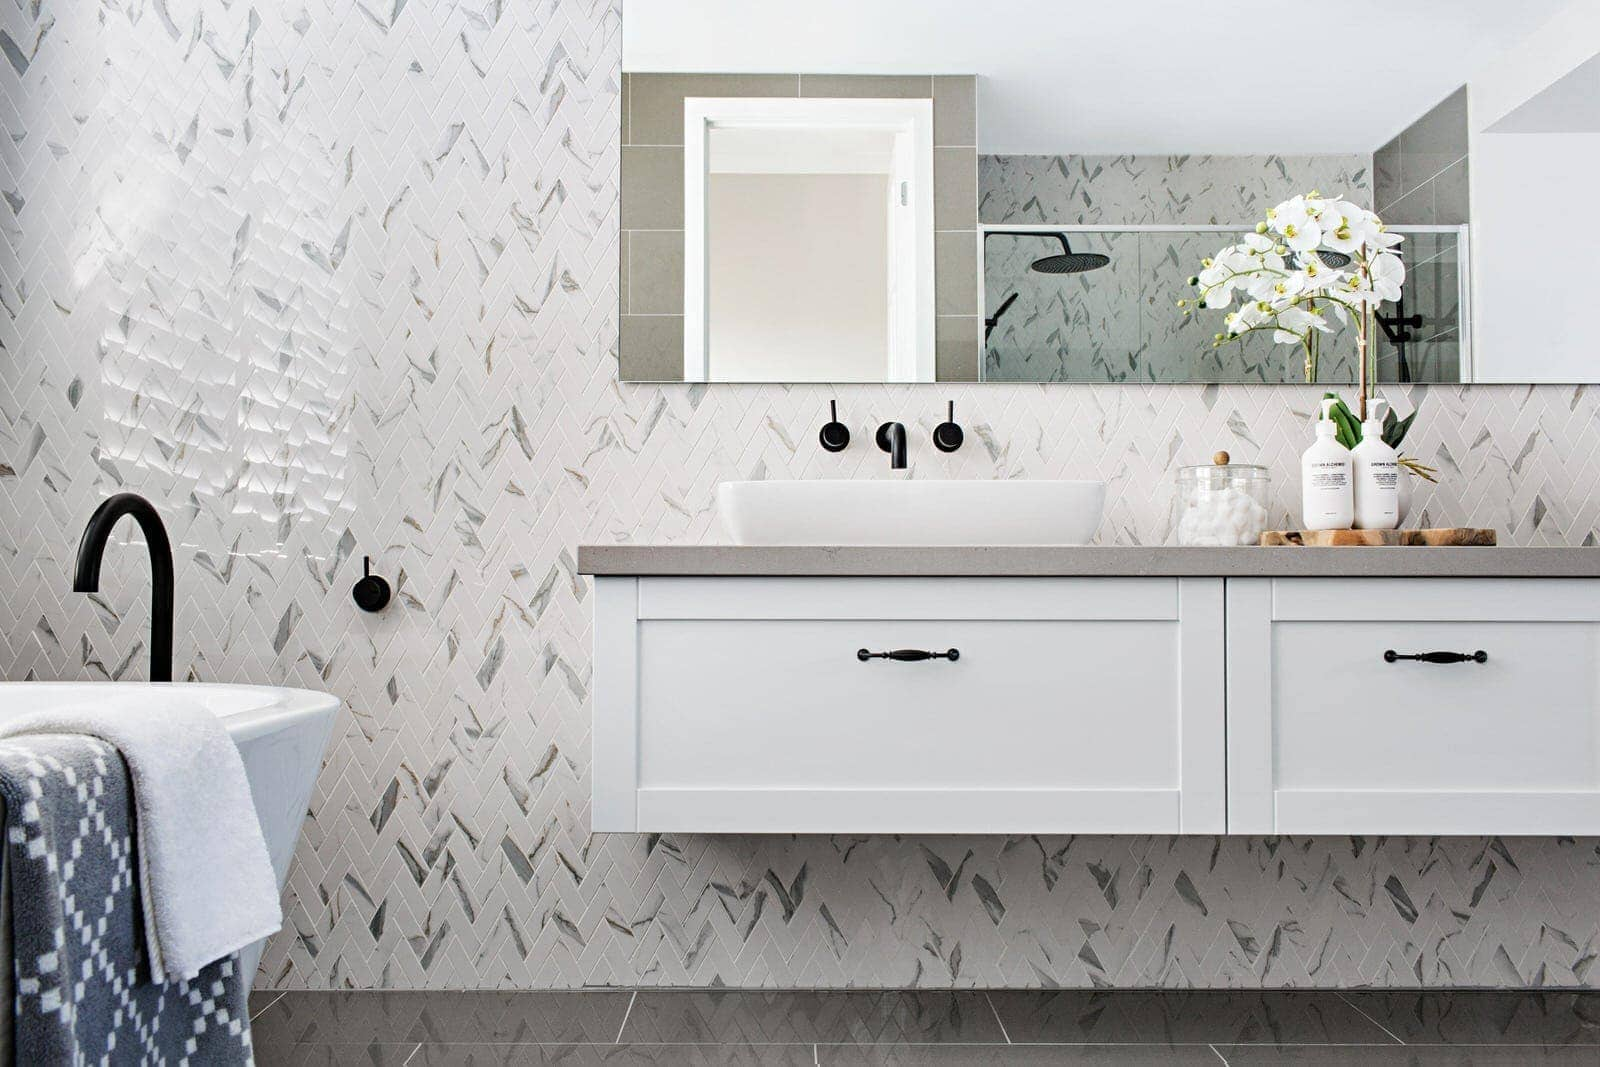 Hamptons Decor Australia Your Dream Hamptons Style Bathroom In A Few Easy Steps